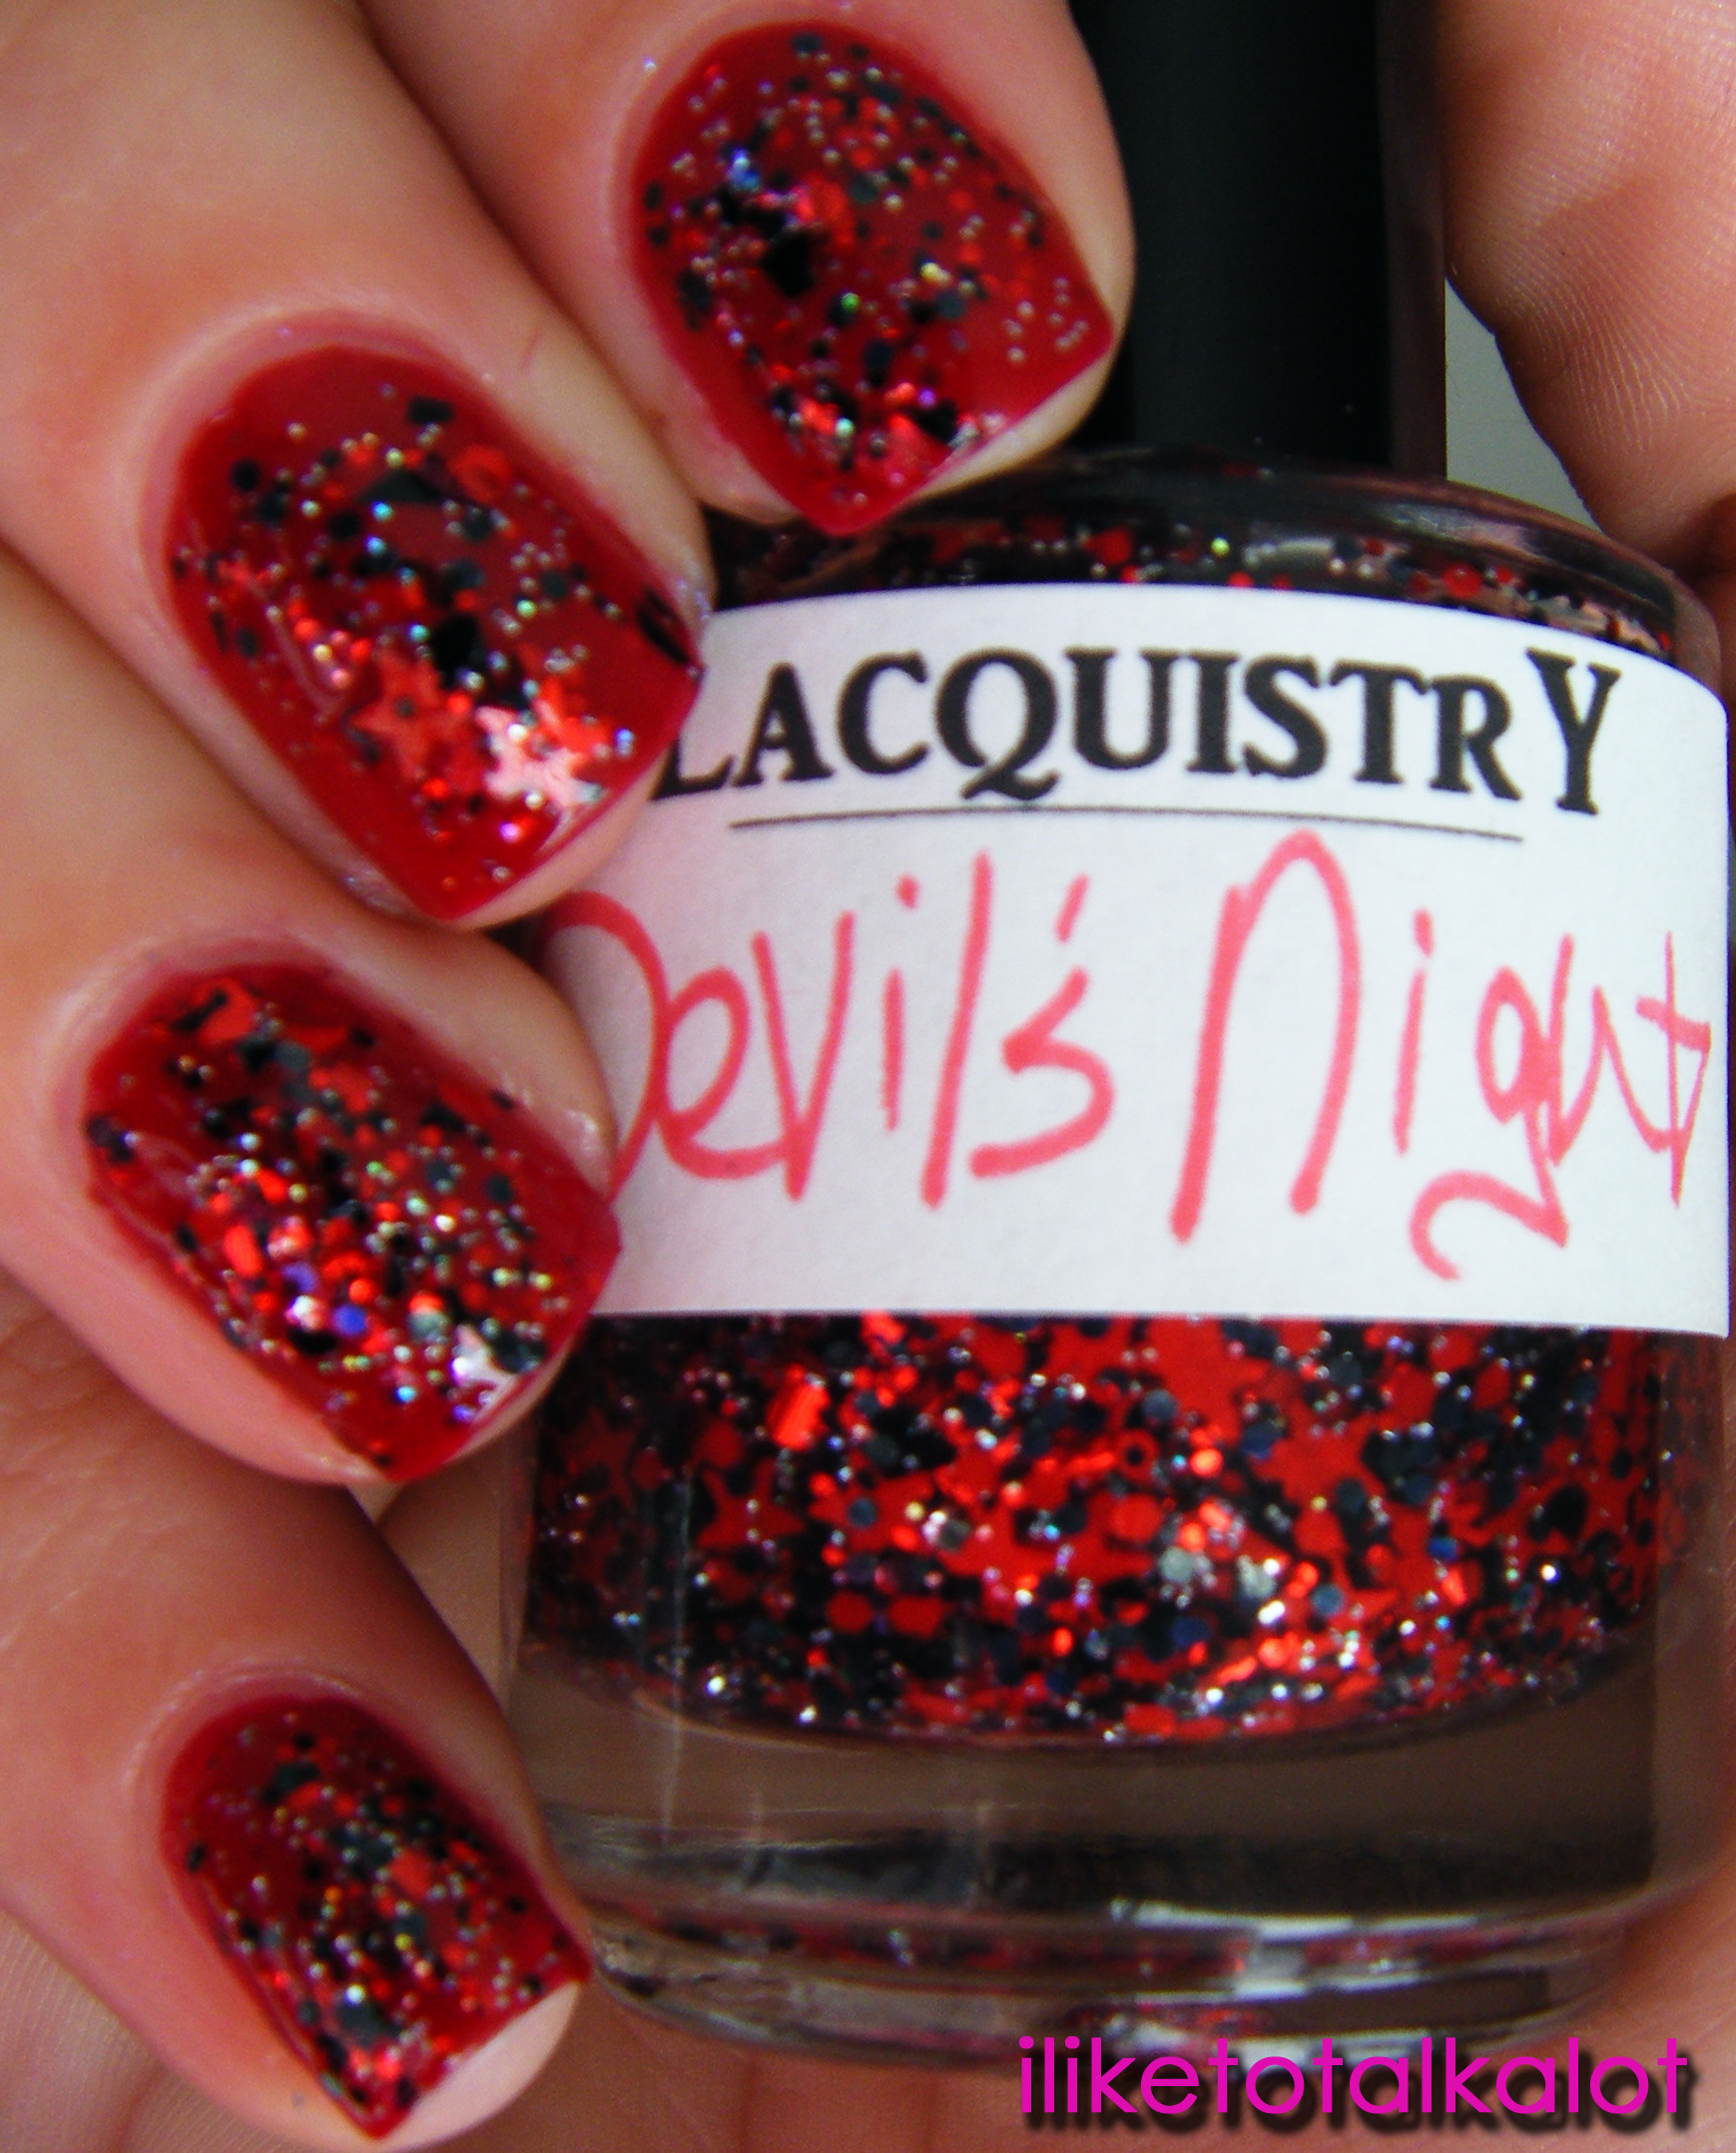 Etsy\'s Lacquistry: Devil\'s Night Swatches ...